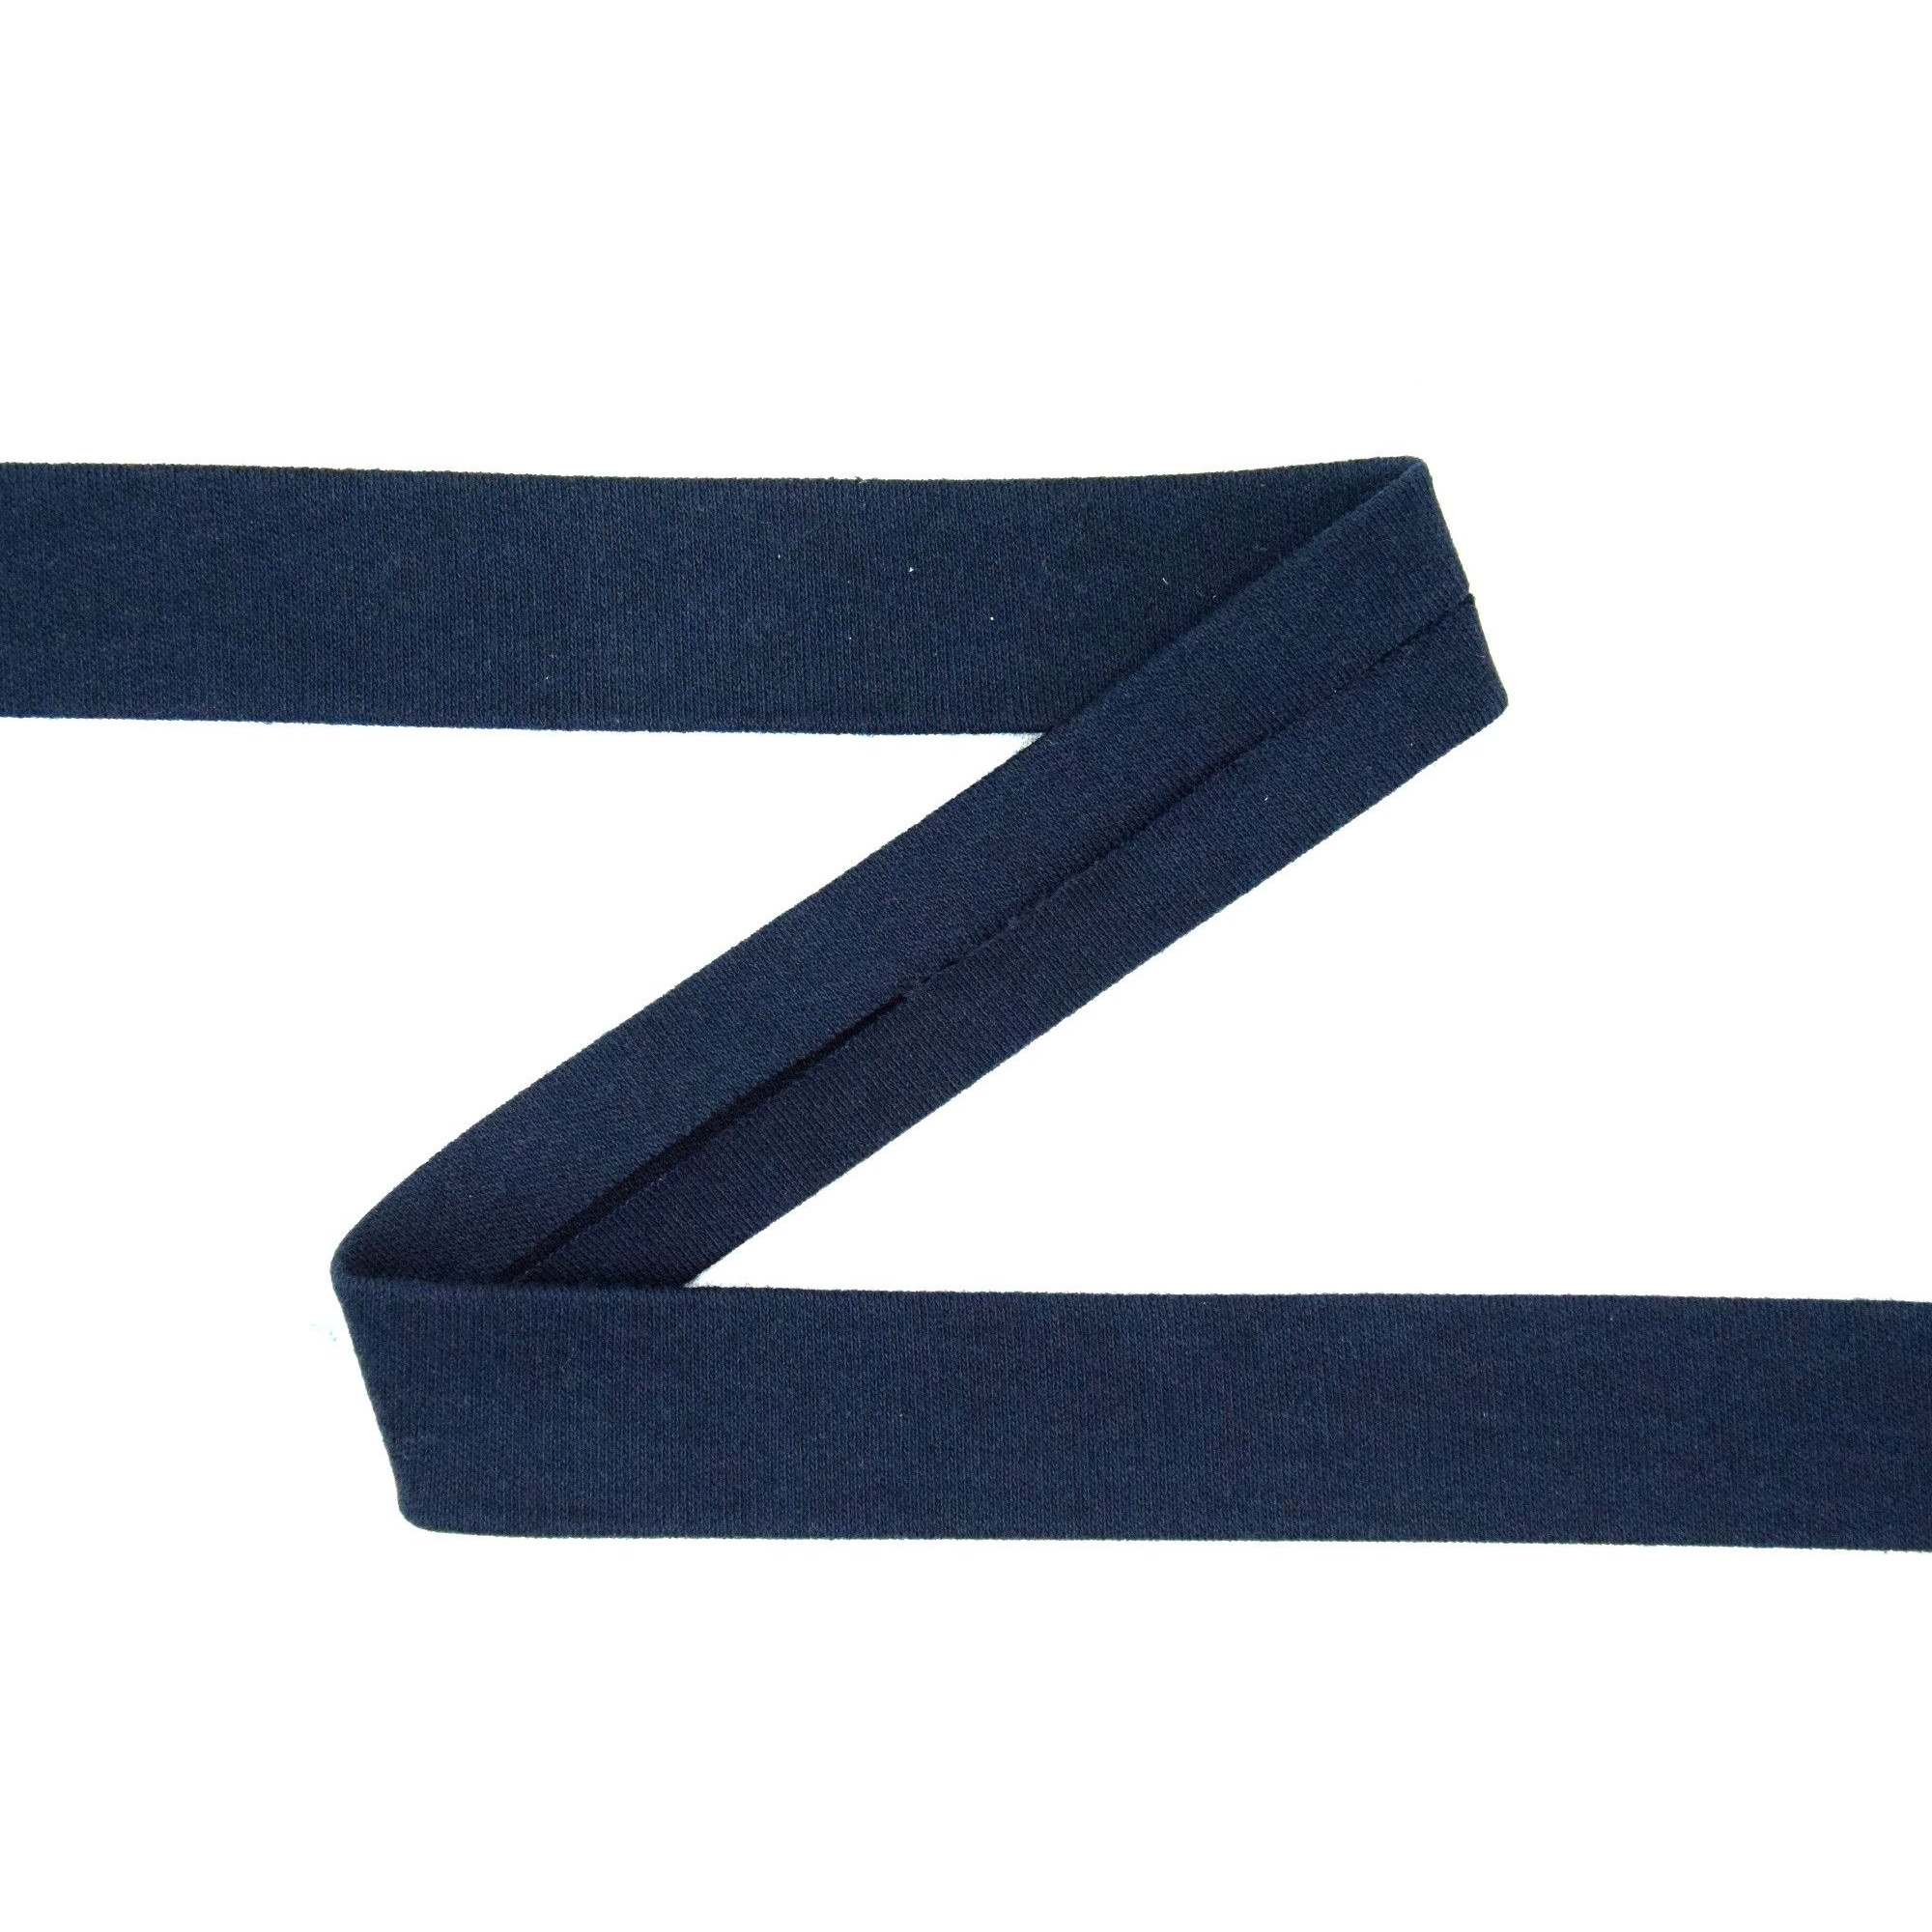 Bias binding stretch cotton, dark blue | 42740 | blau